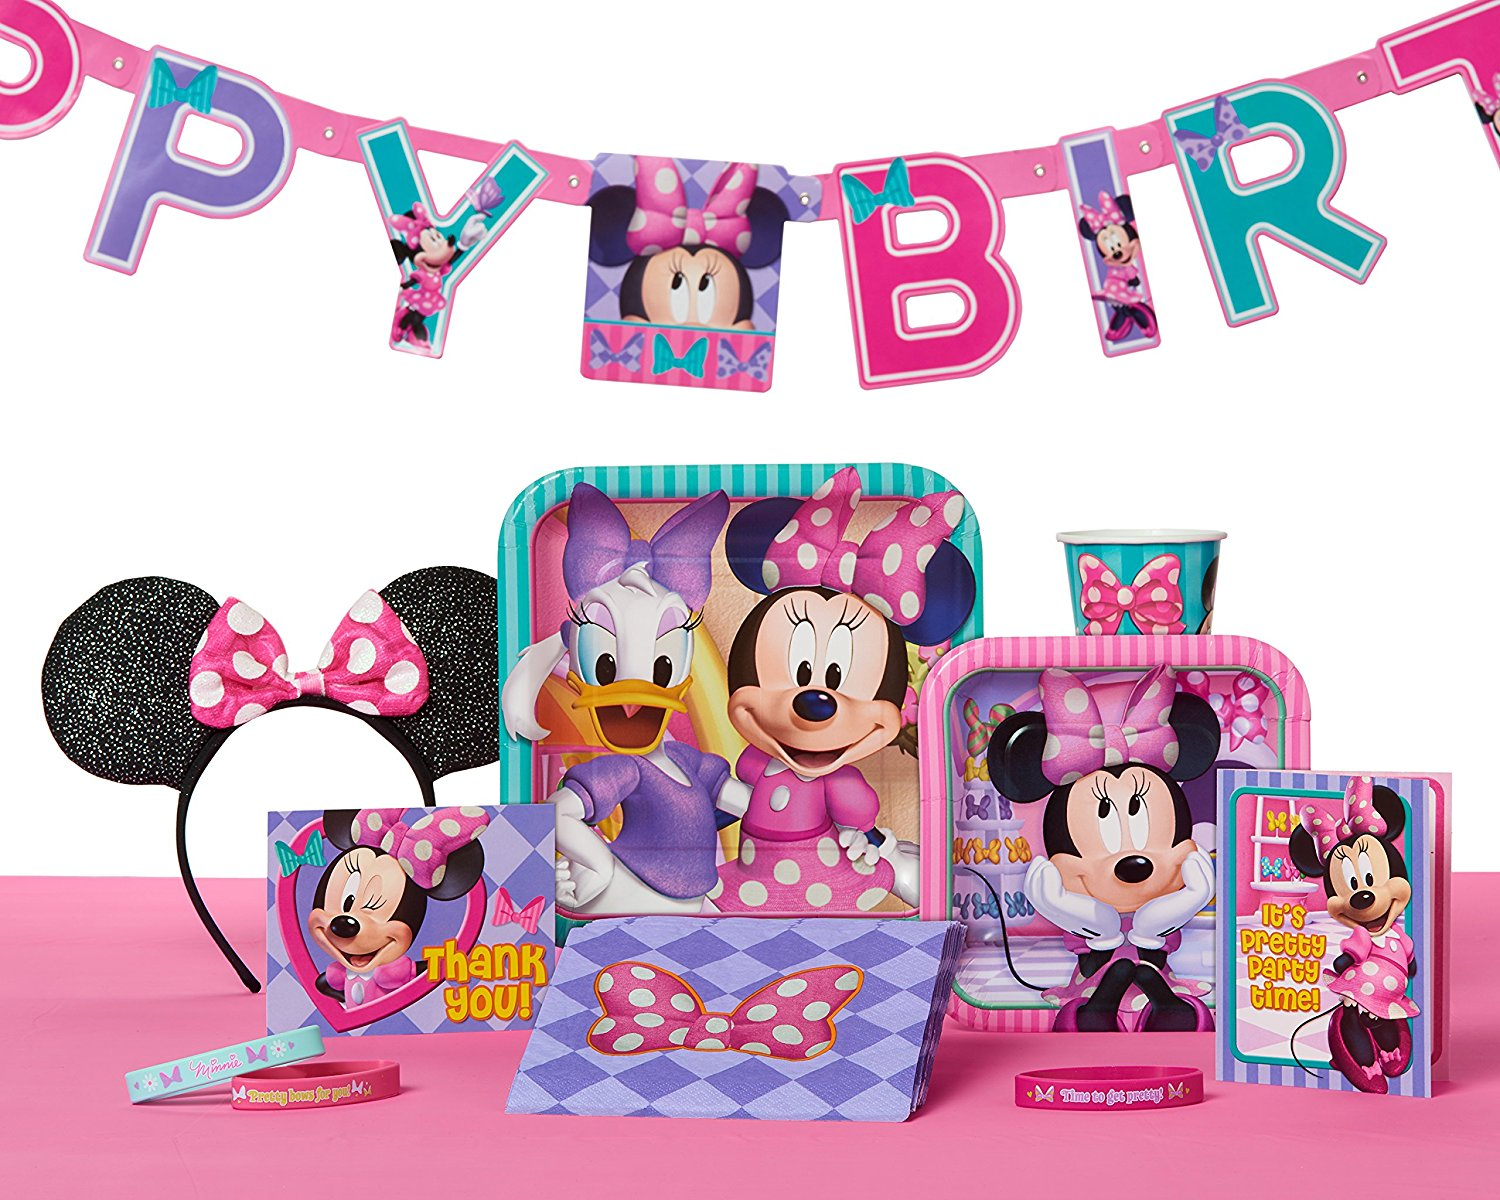 Minnie Mouse Bow Tique Happy Birthday Party Decoration Banner 7 59